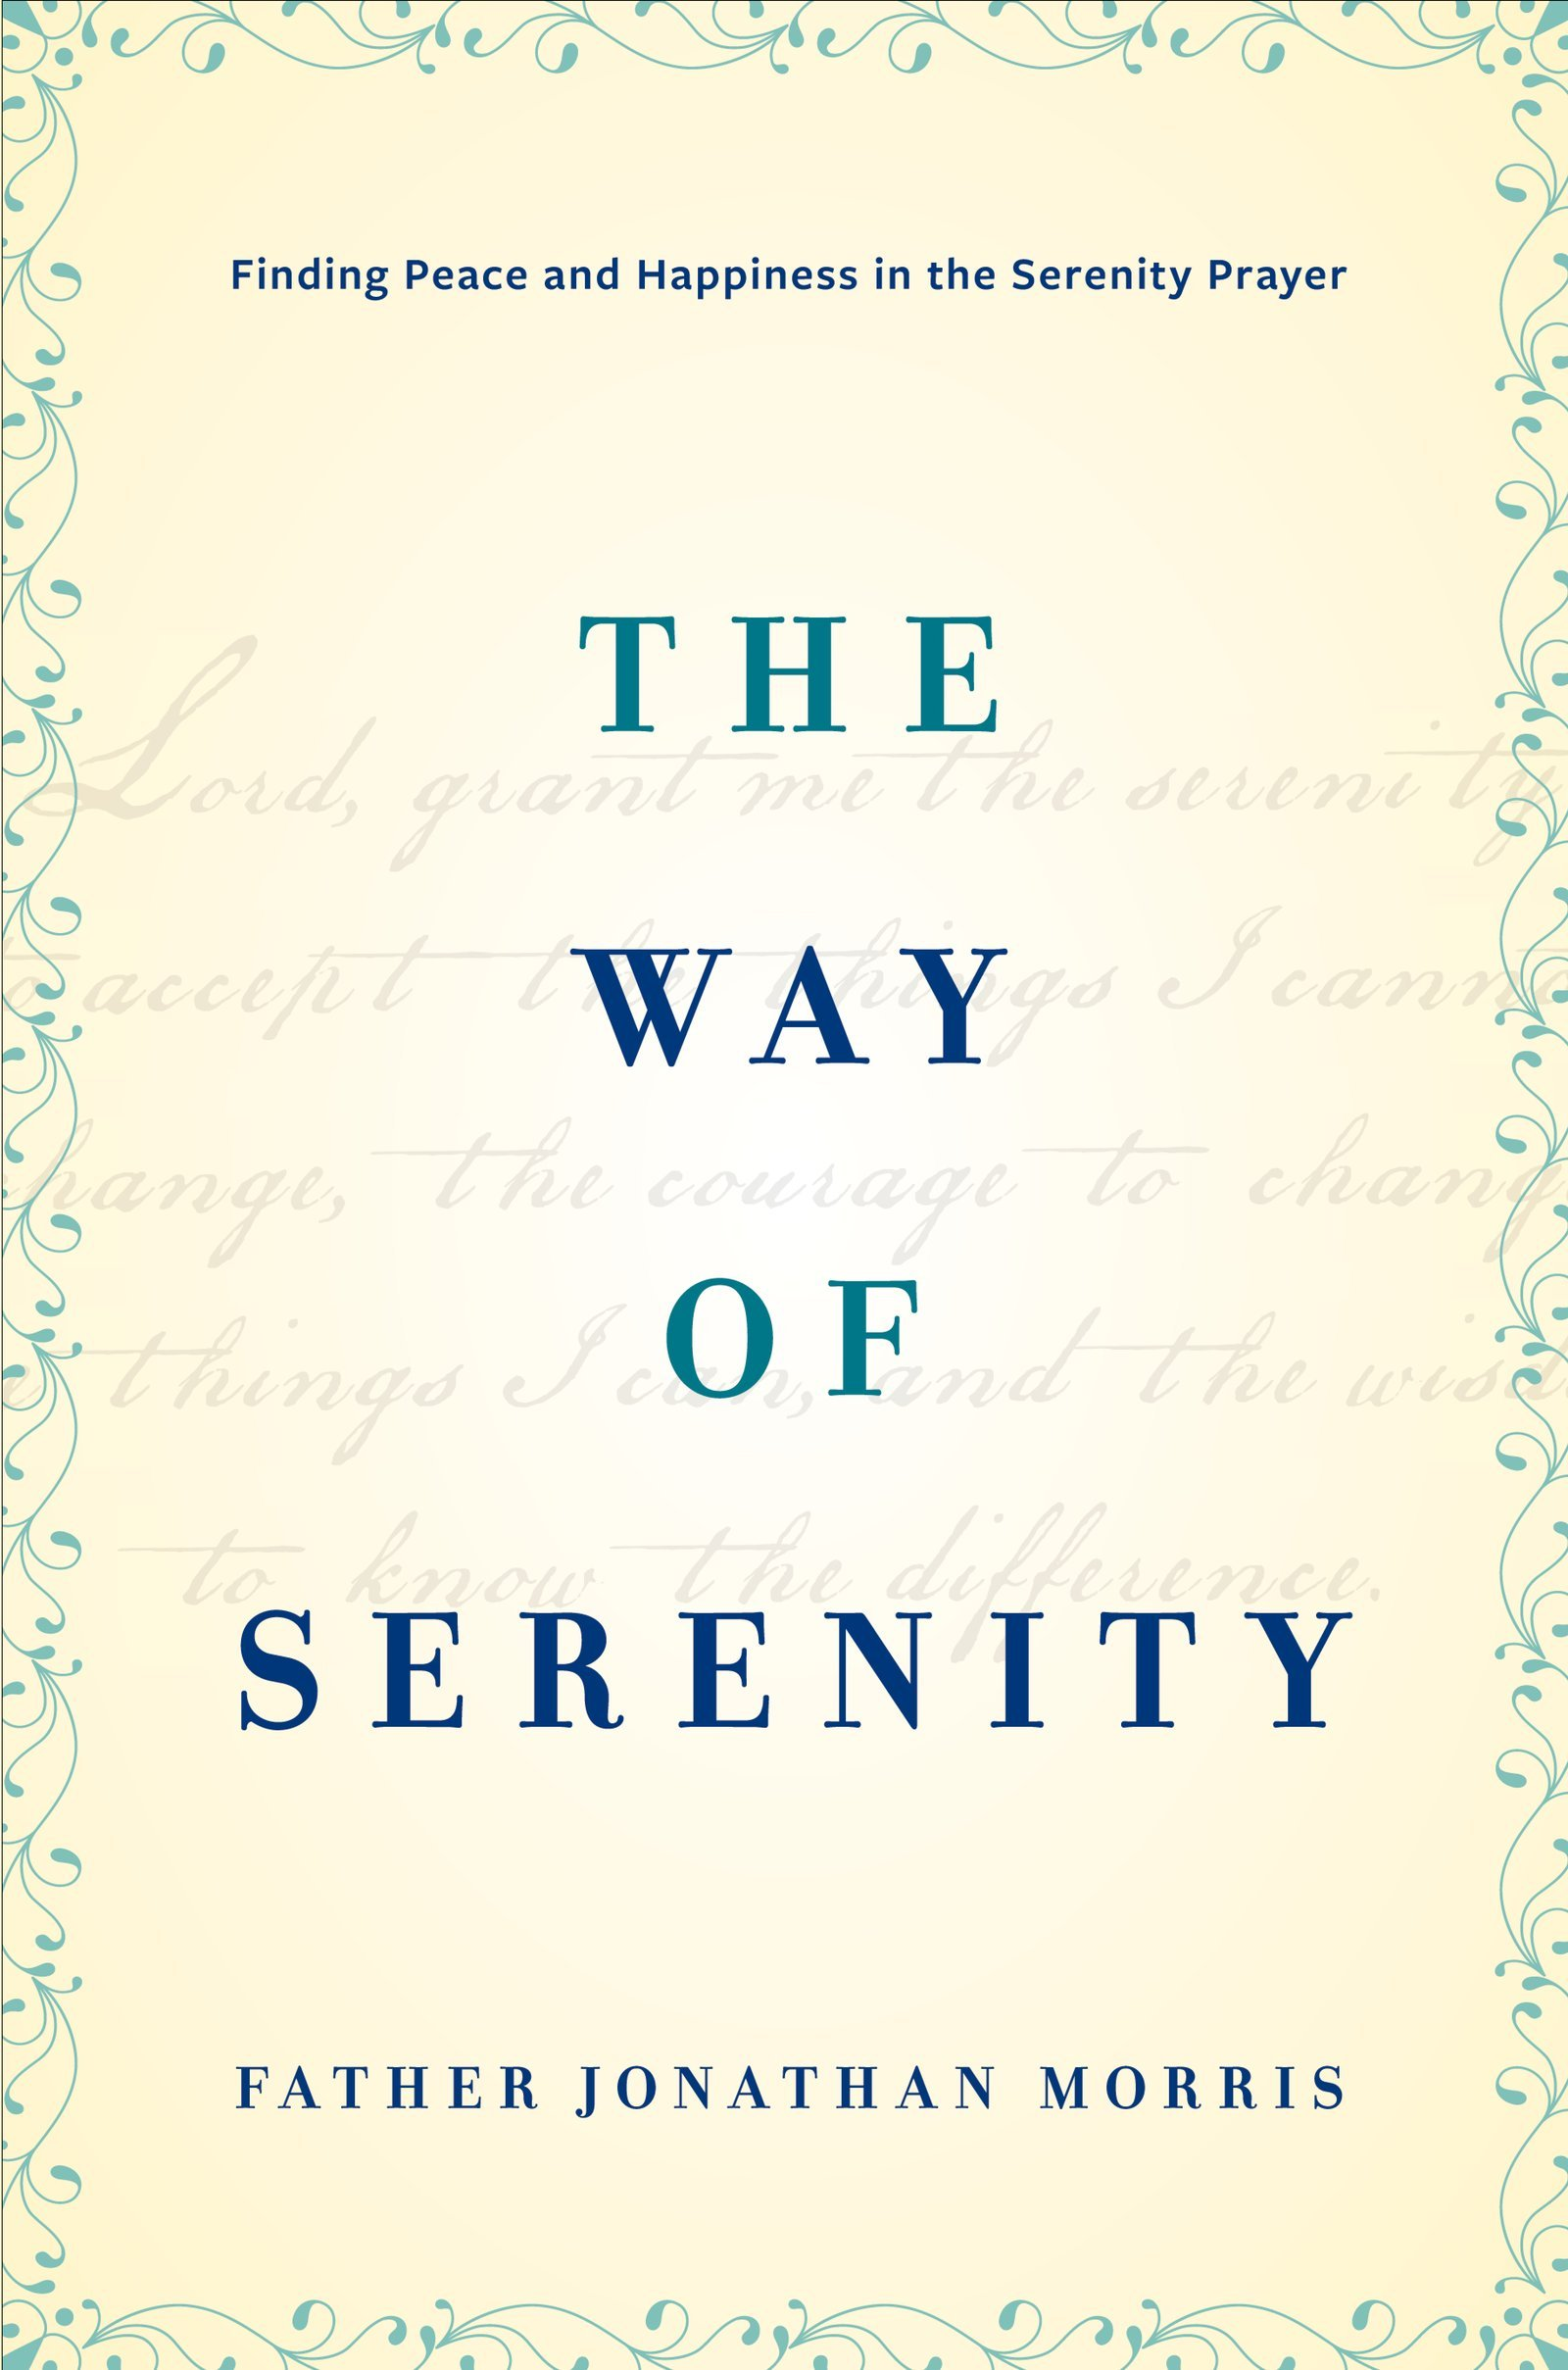 Book review: The Way of Serenity